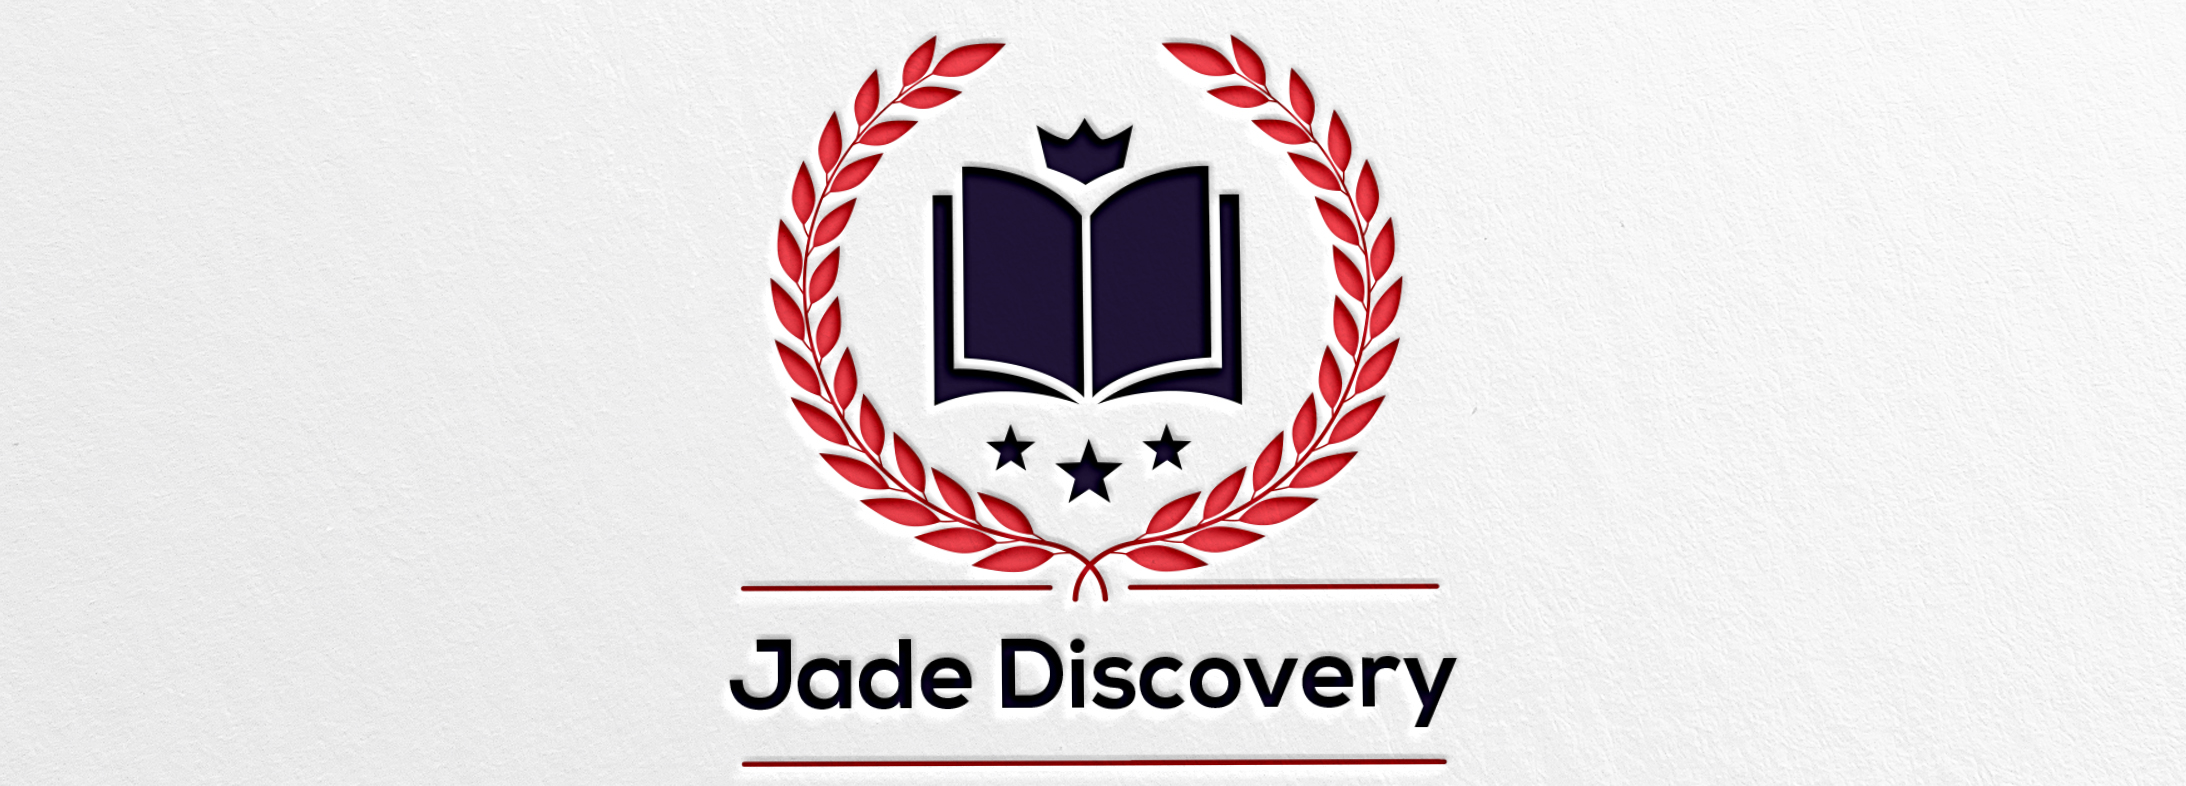 Jade Discovery